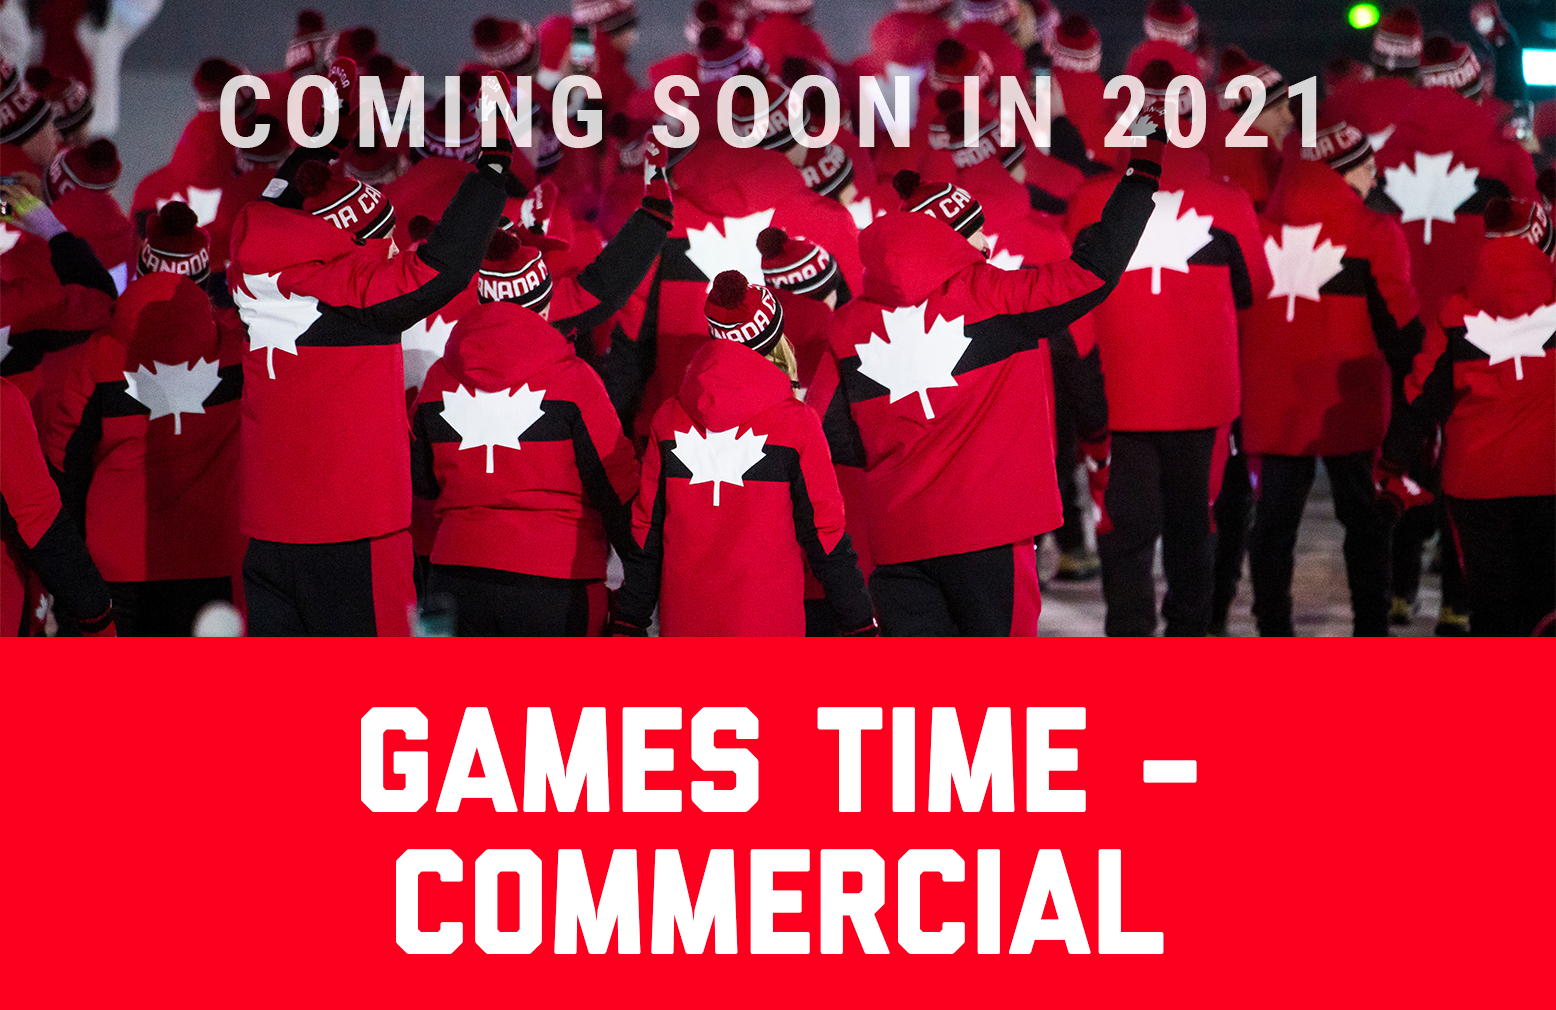 Coming soon in 2021, Games time commercial